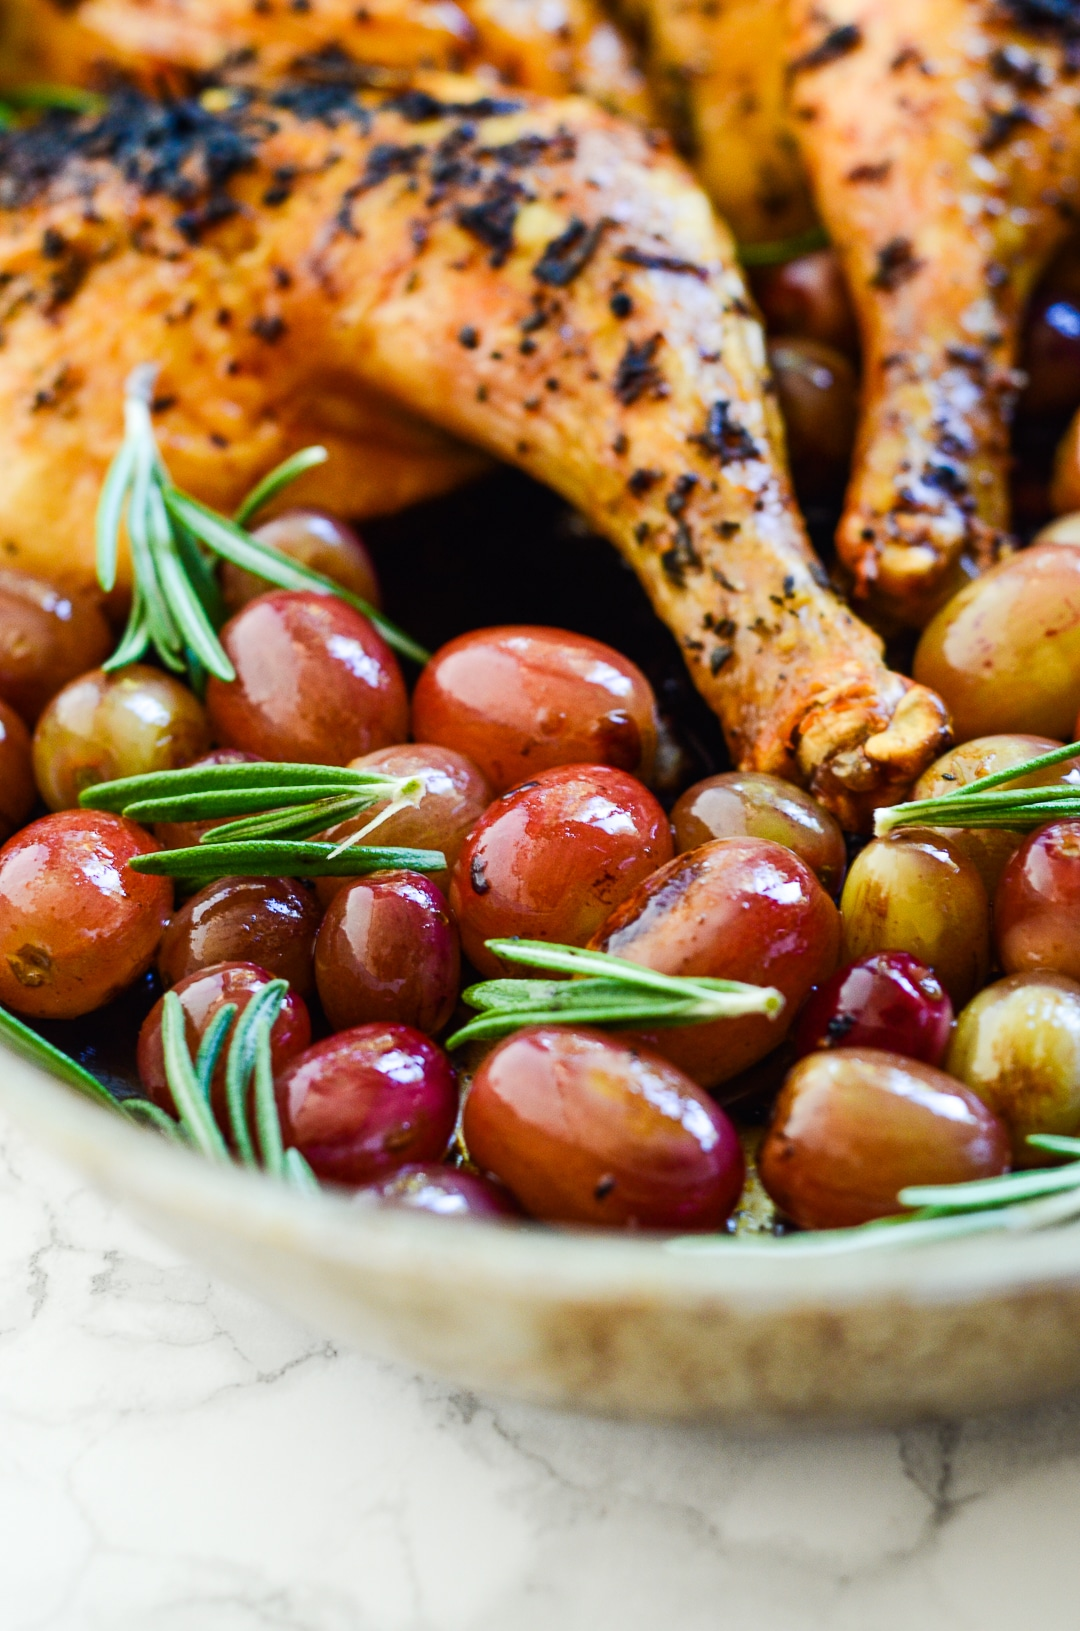 Make an autumnal entrée the whole family will love with thisMaple Rosemary Spatchcock Chicken with Roasted Grapes. It's dairy-free, gluten-free, and done in 1 hour.